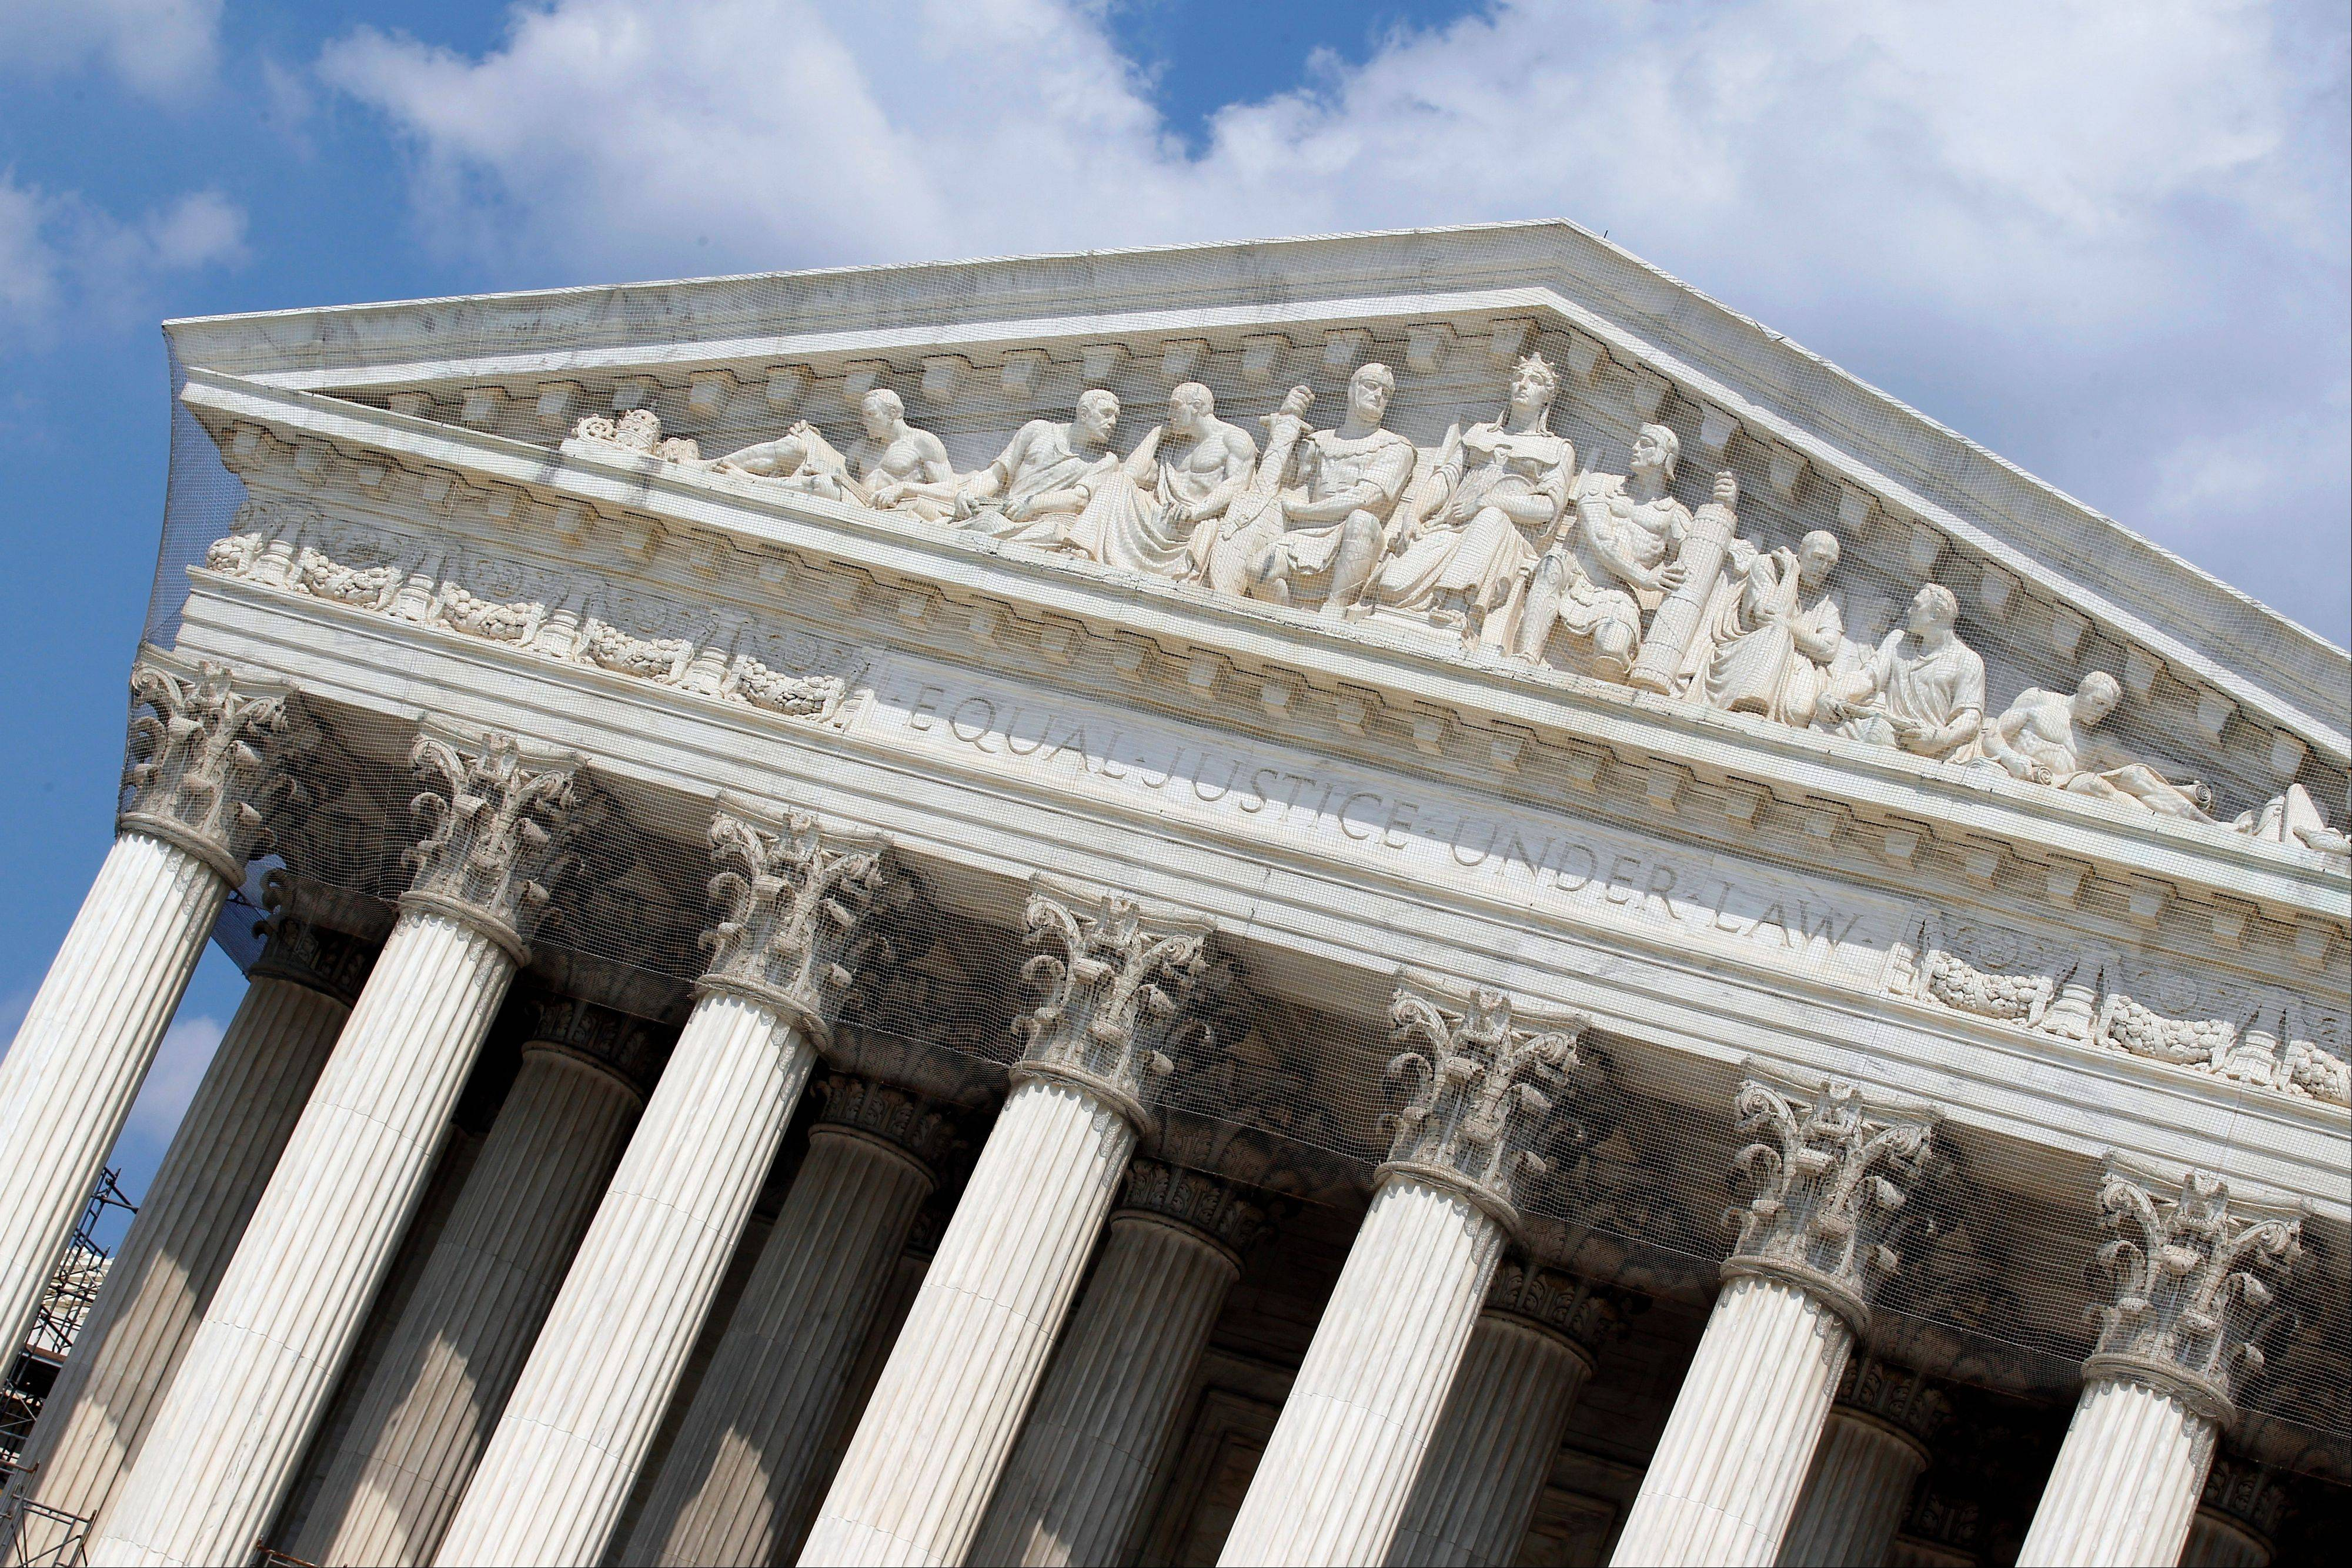 The U.S. Supreme Court raised questions about the multibillion-dollar trade in goods outside authorized distribution channels, hearing arguments in the case of a graduate student sued for selling foreign-edition textbooks in the U.S. at discount prices.